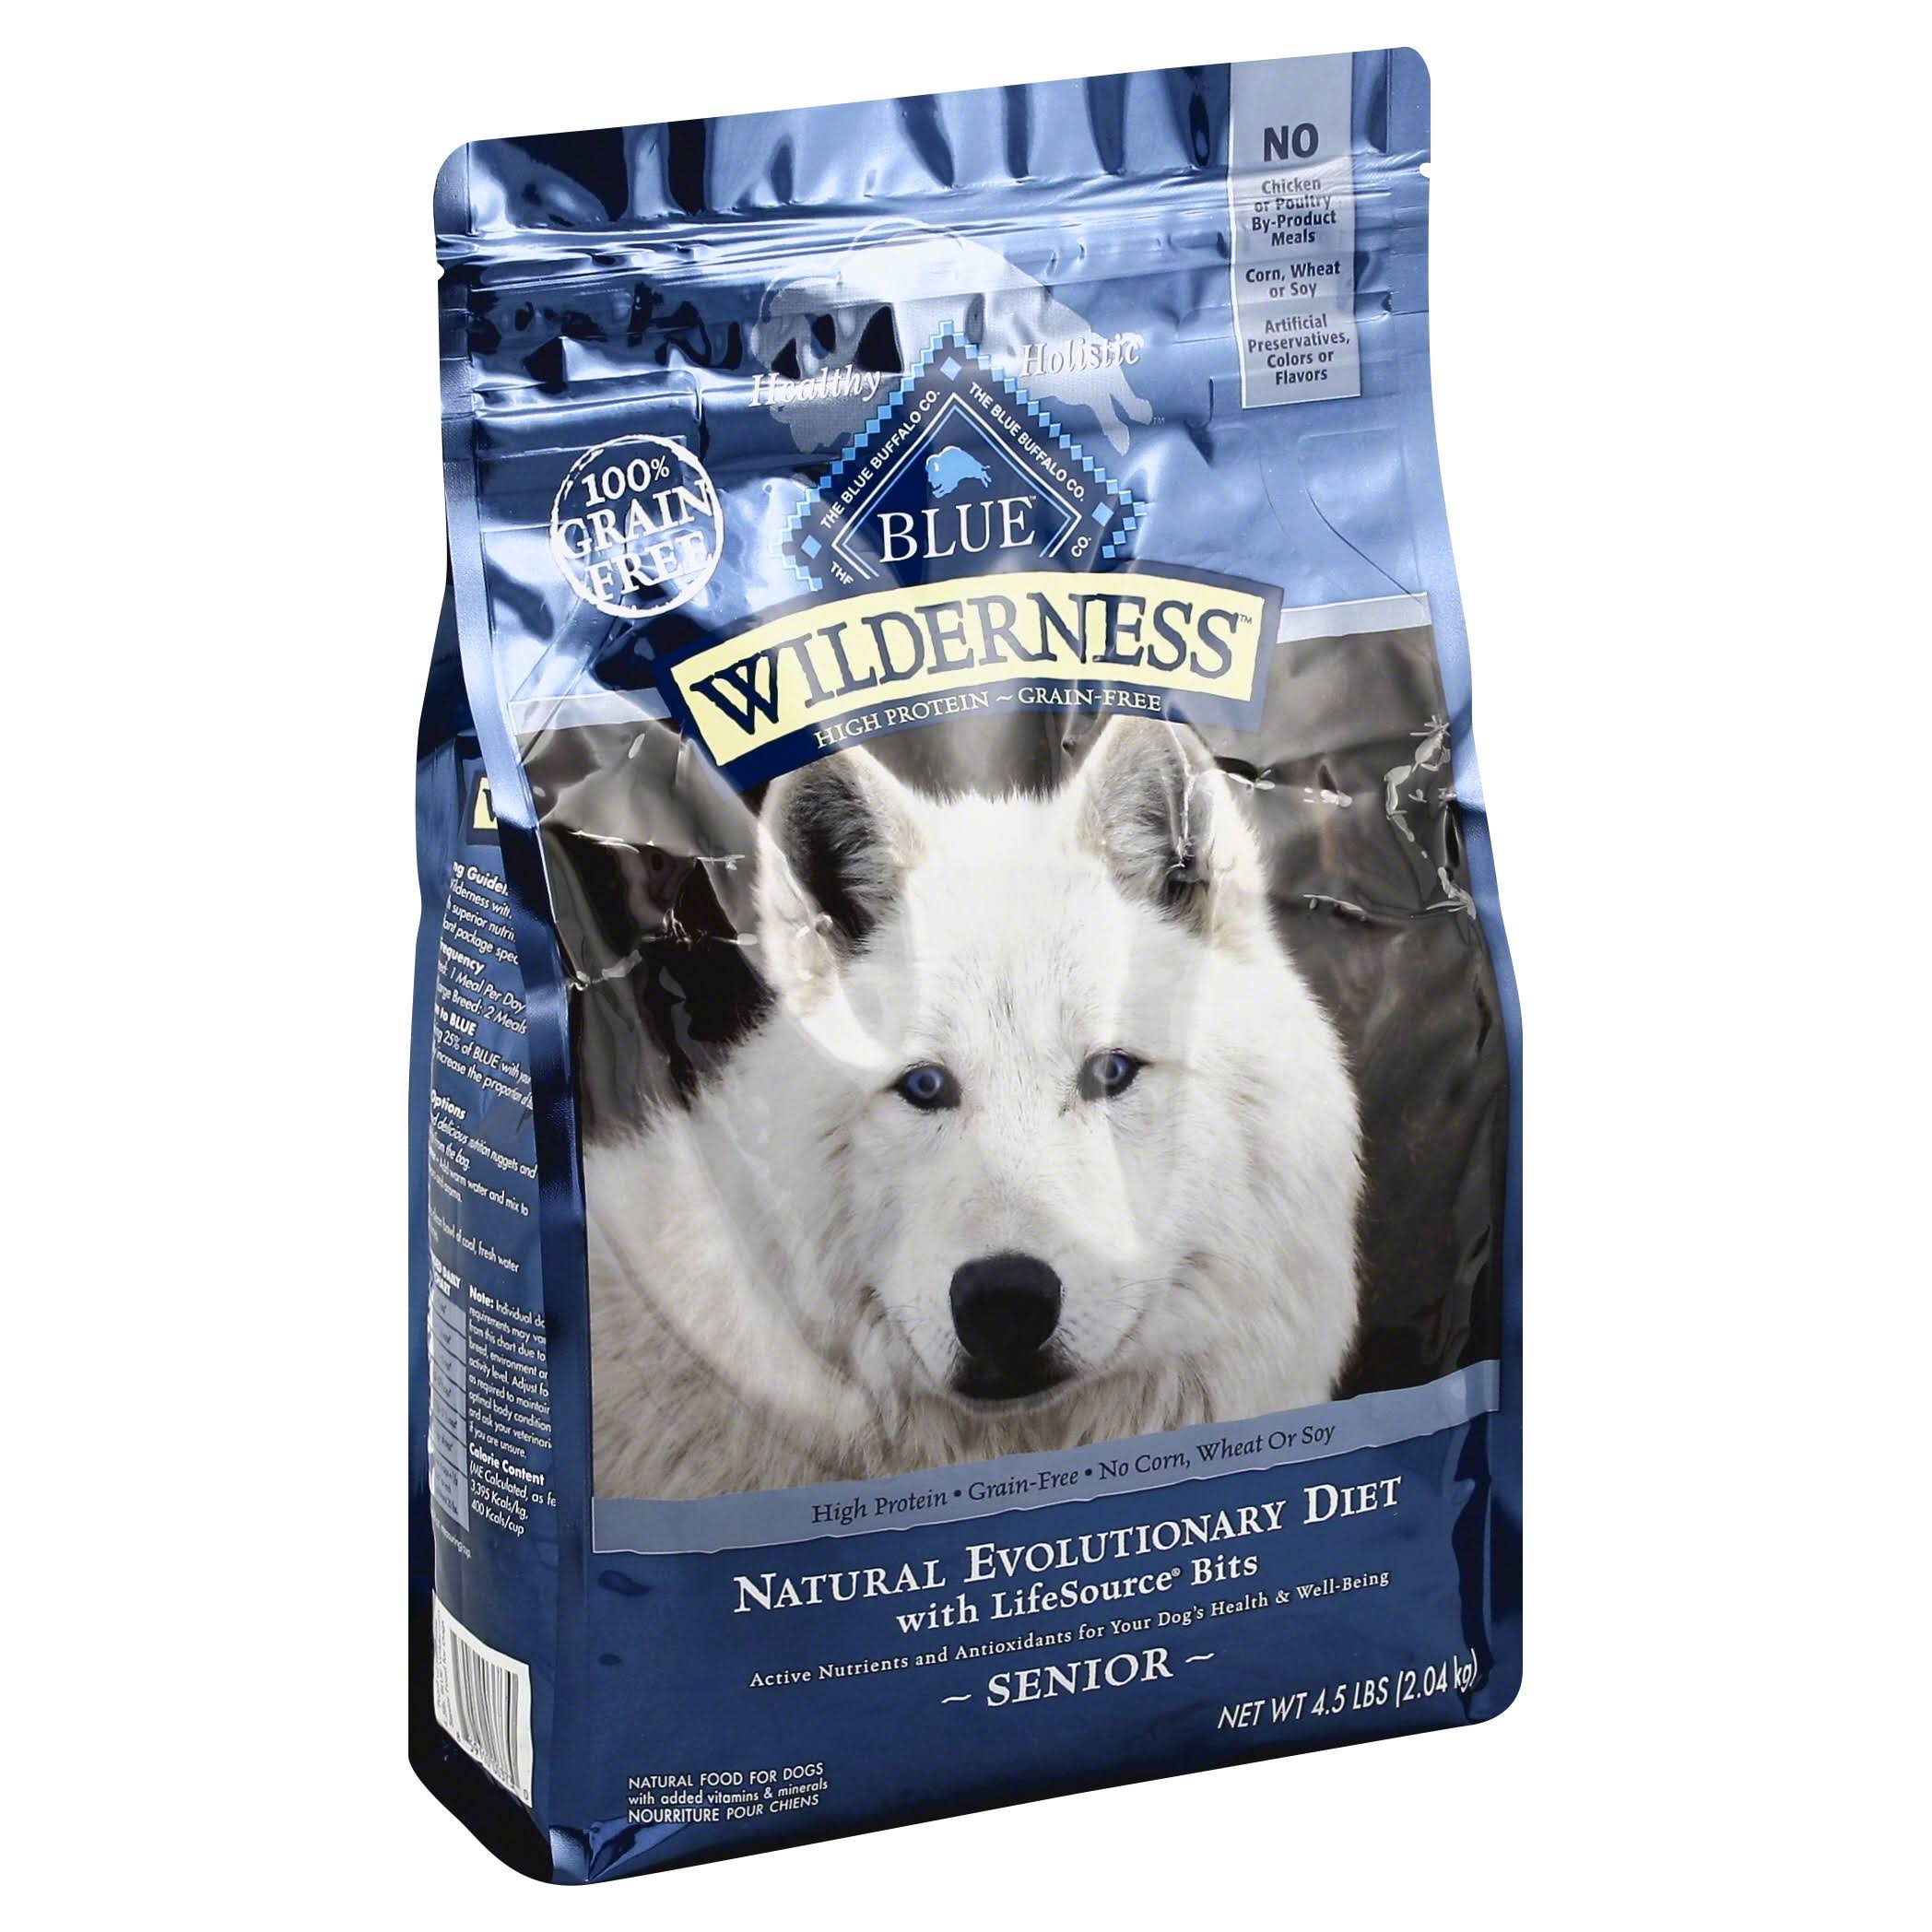 Blue Buffalo Wilderness High Protein Dry Senior Dog Food - 4.5lb